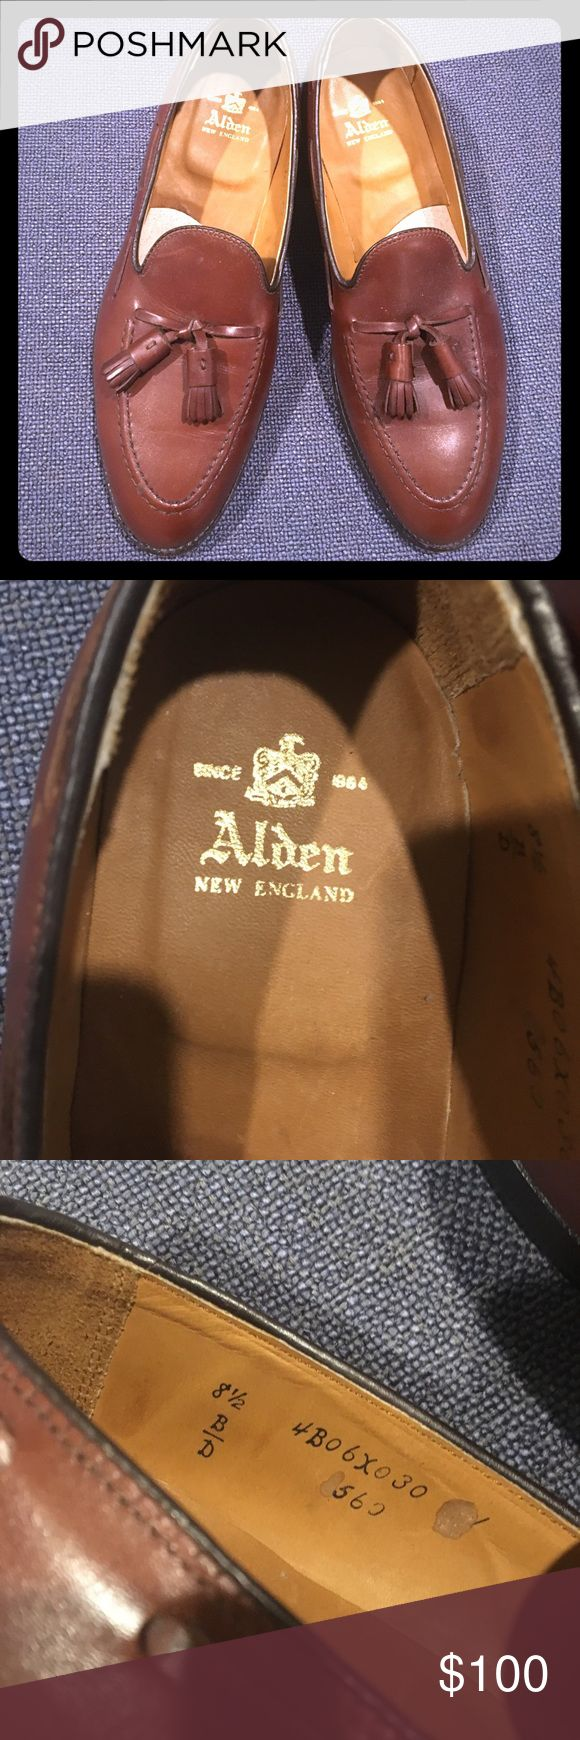 Alden Brown Leather Tassel Loafers Beautiful Alden Brown Leather Tassel Loafers. Light wear; price reflects. Size 8.5. Alden is a premier and classic shoe manufacturer and quality is impeccable. Originally $500- great deal! Shoes